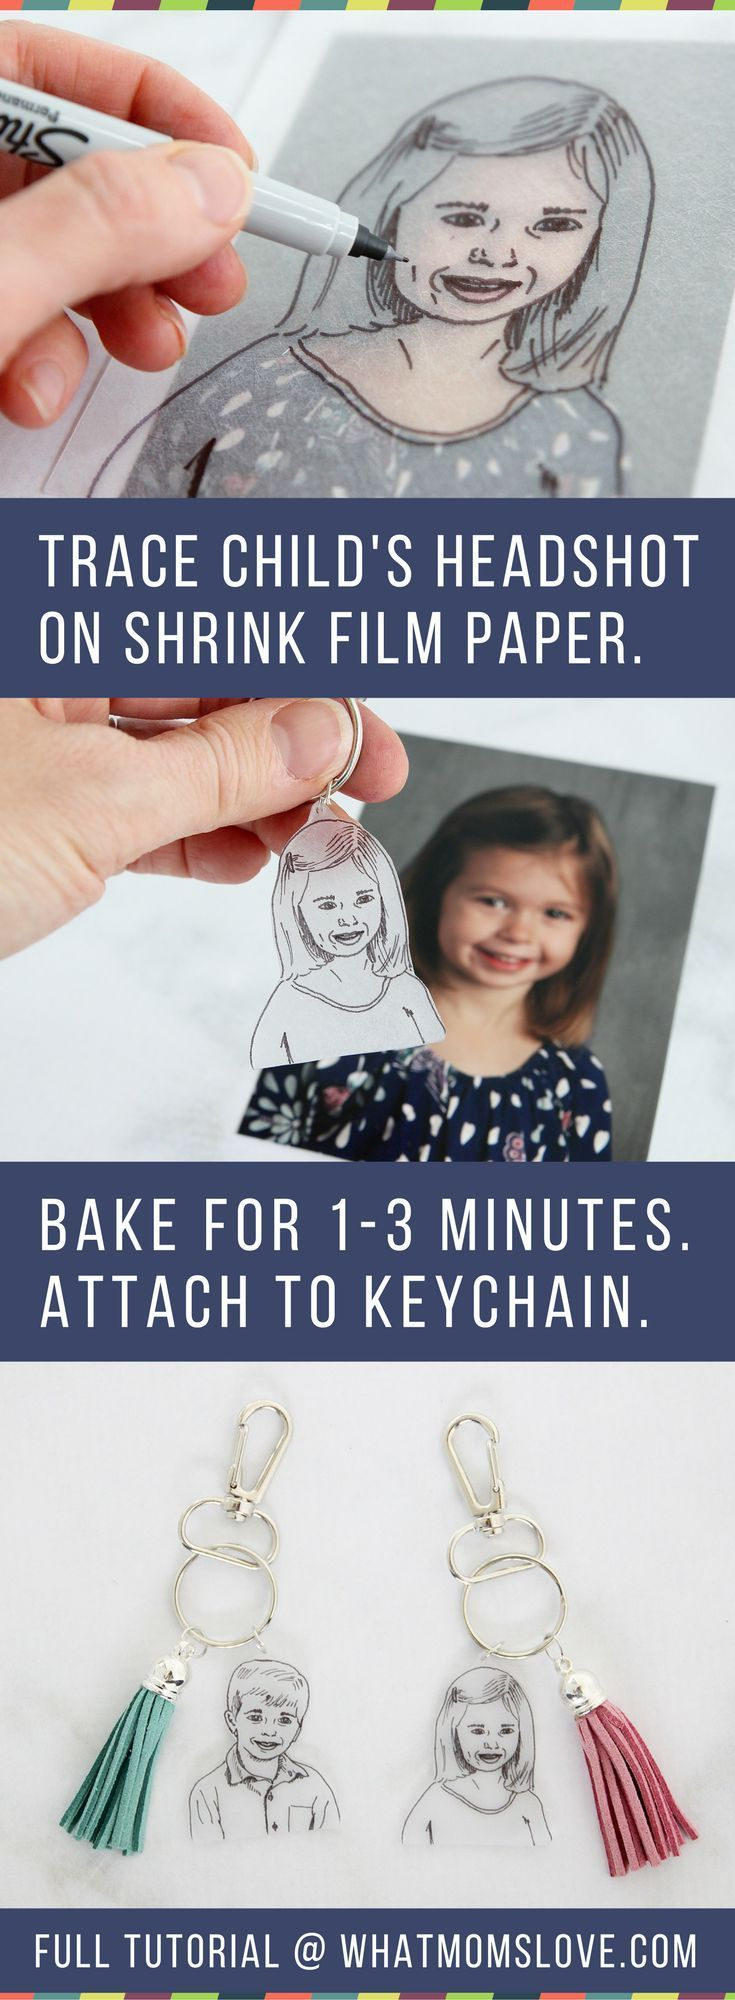 Shrink Film Keepsake Keychain. A Unique DIY Gift For Mom & Grandma To Gush Over This Mother's Day. - what moms love